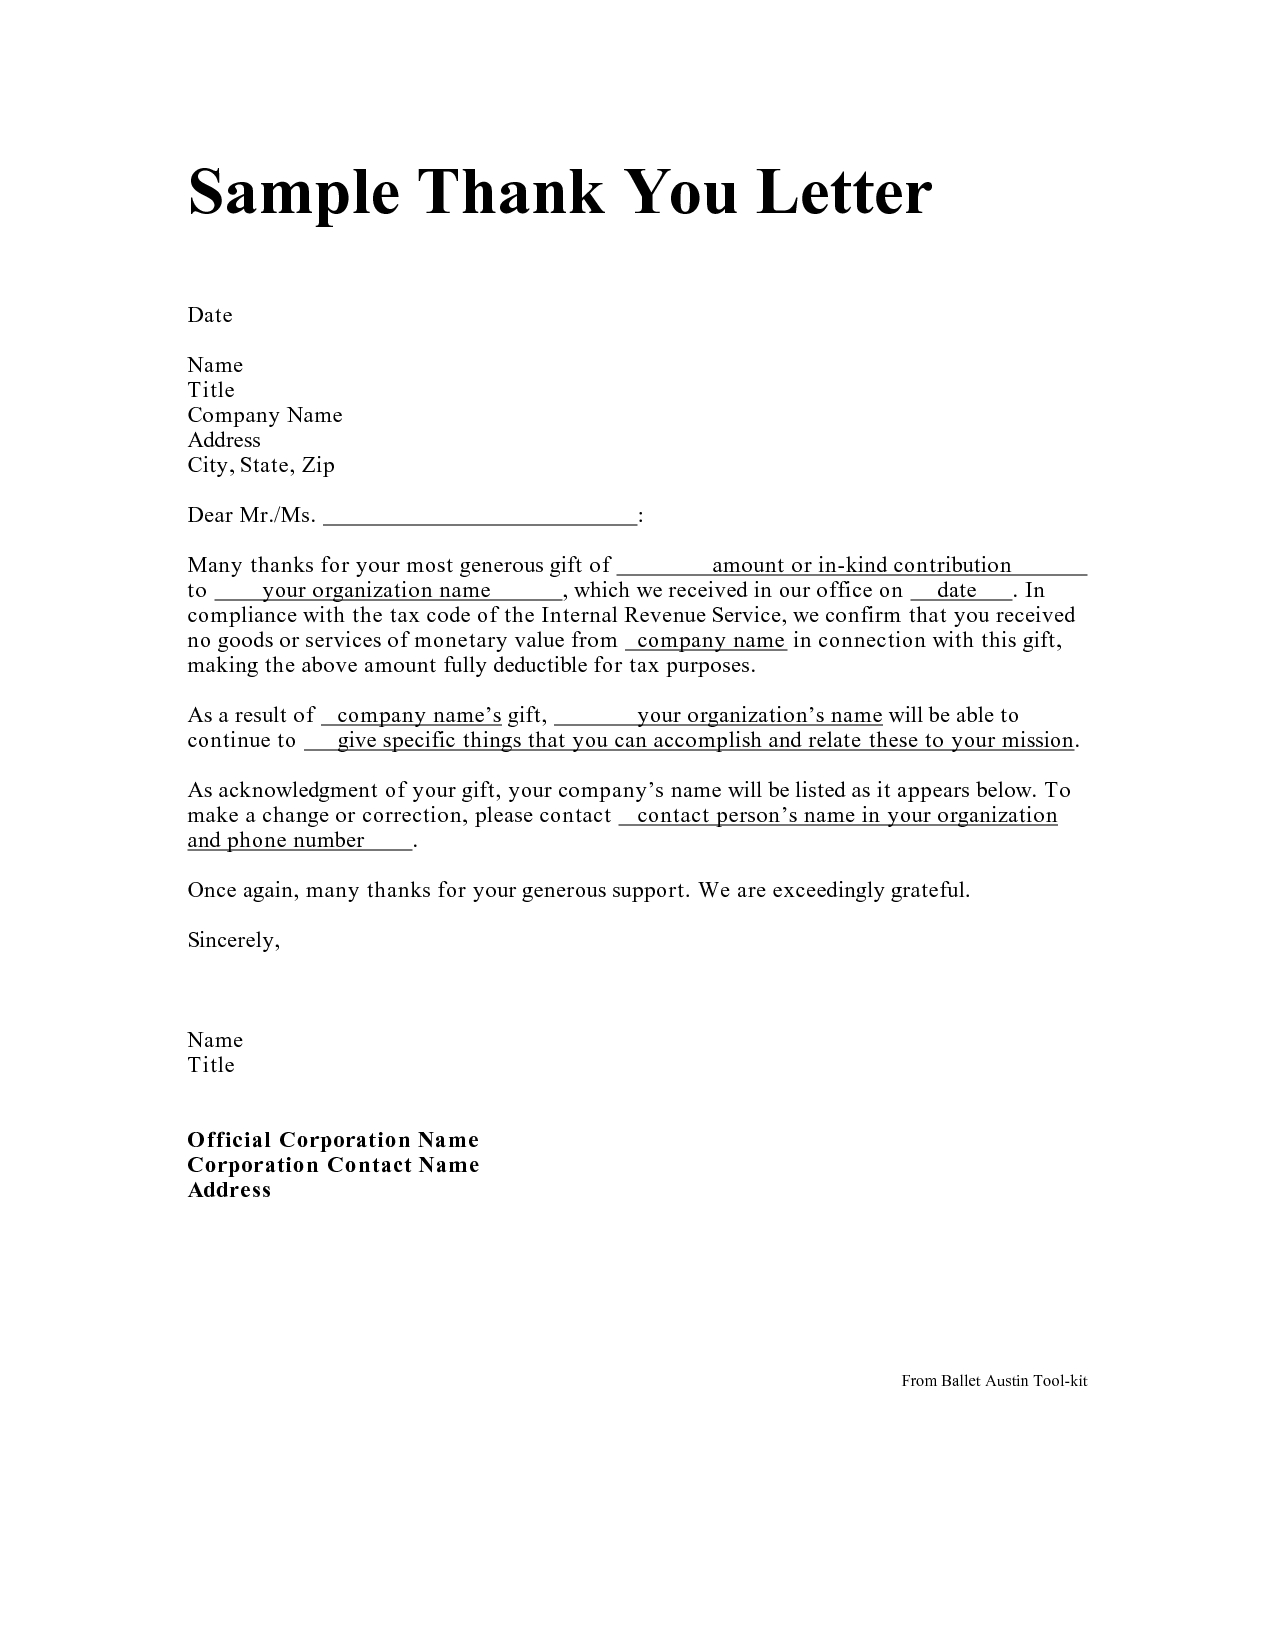 Wedding Welcome Letter Template - Personal Thank You Letter Personal Thank You Letter Samples